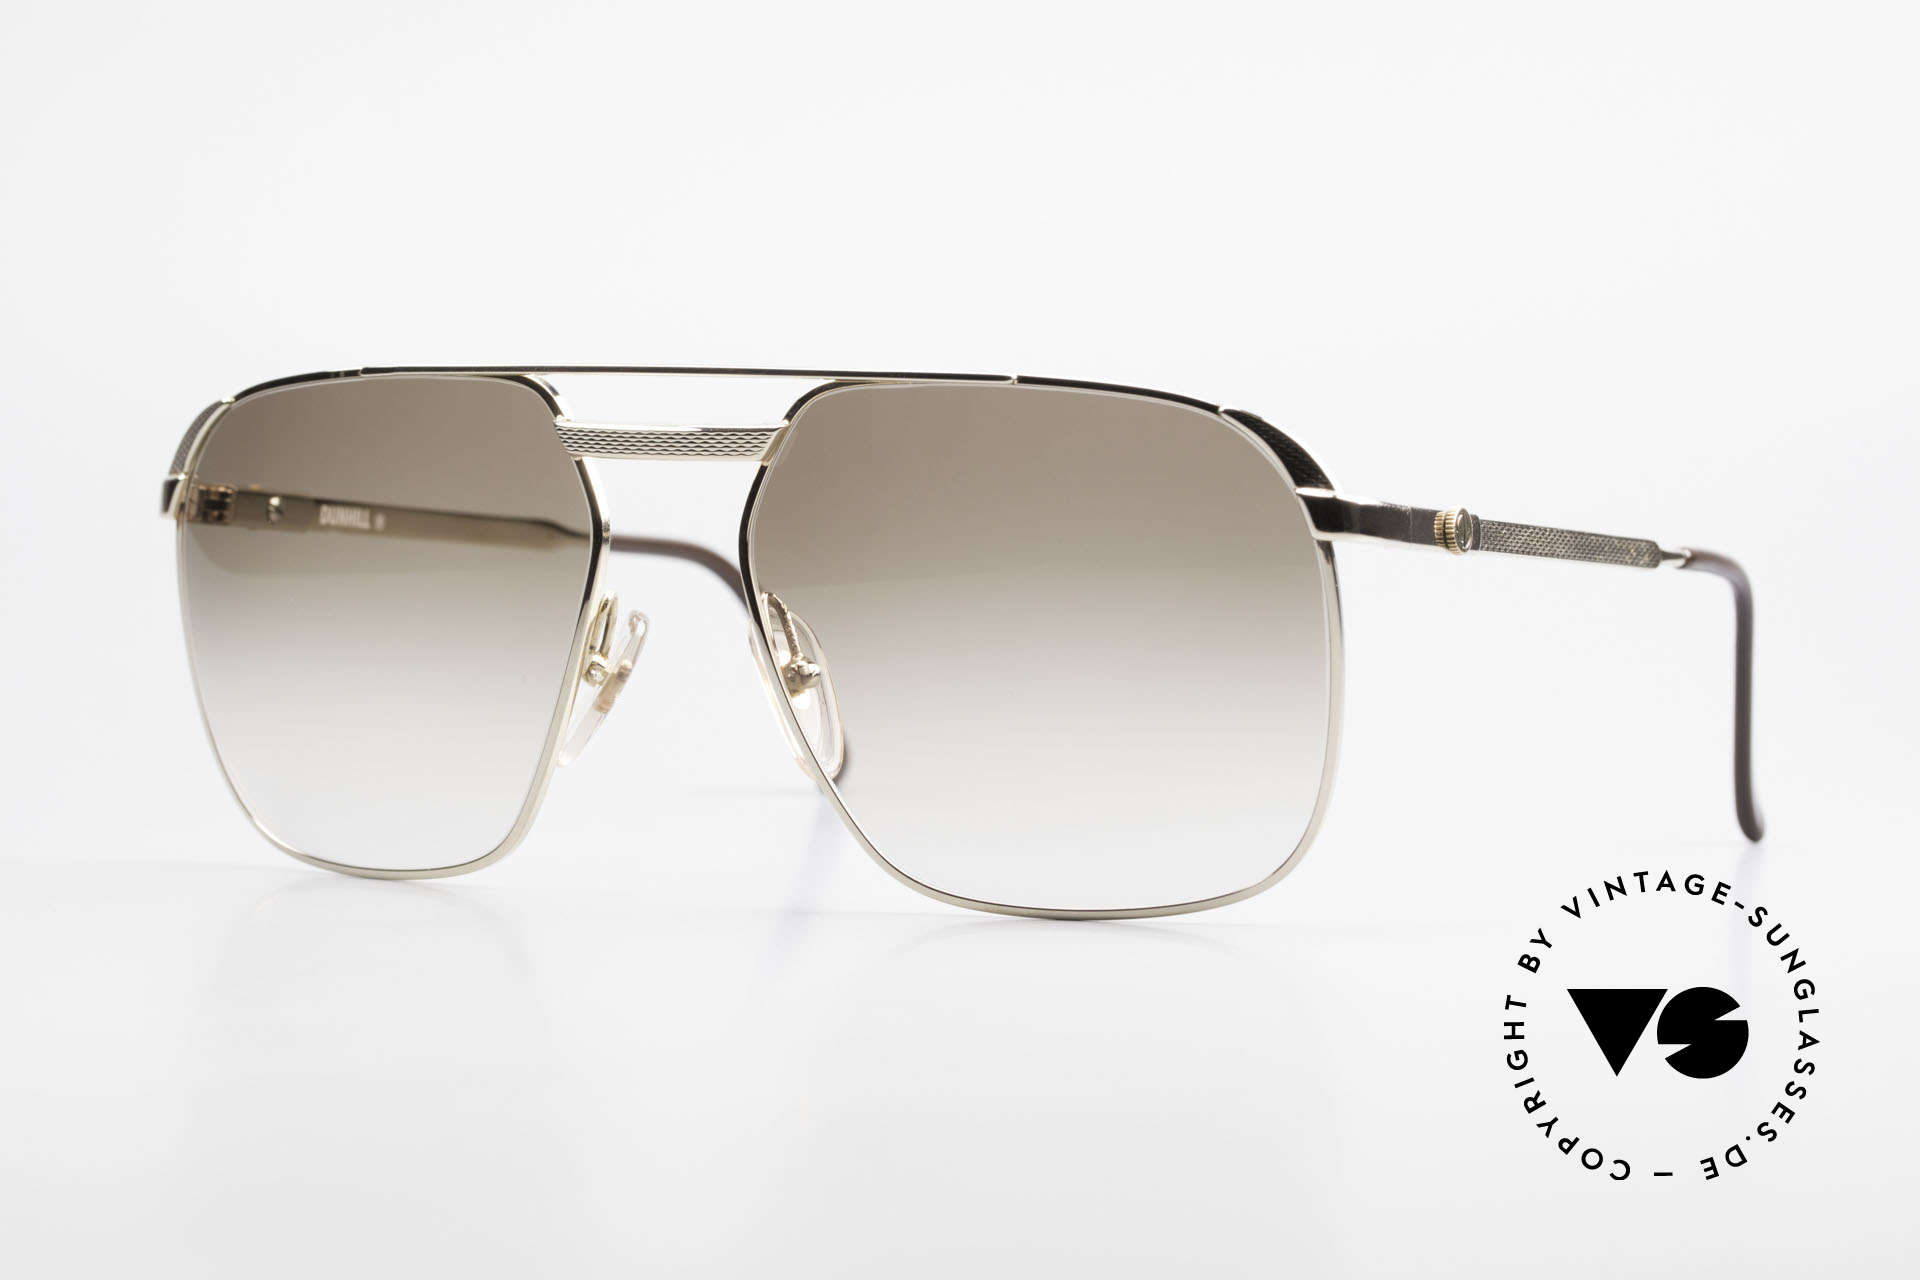 Dunhill 6011 Gold Plated 80's Sunglasses, masterpiece of style, quality, functionality and design, Made for Men